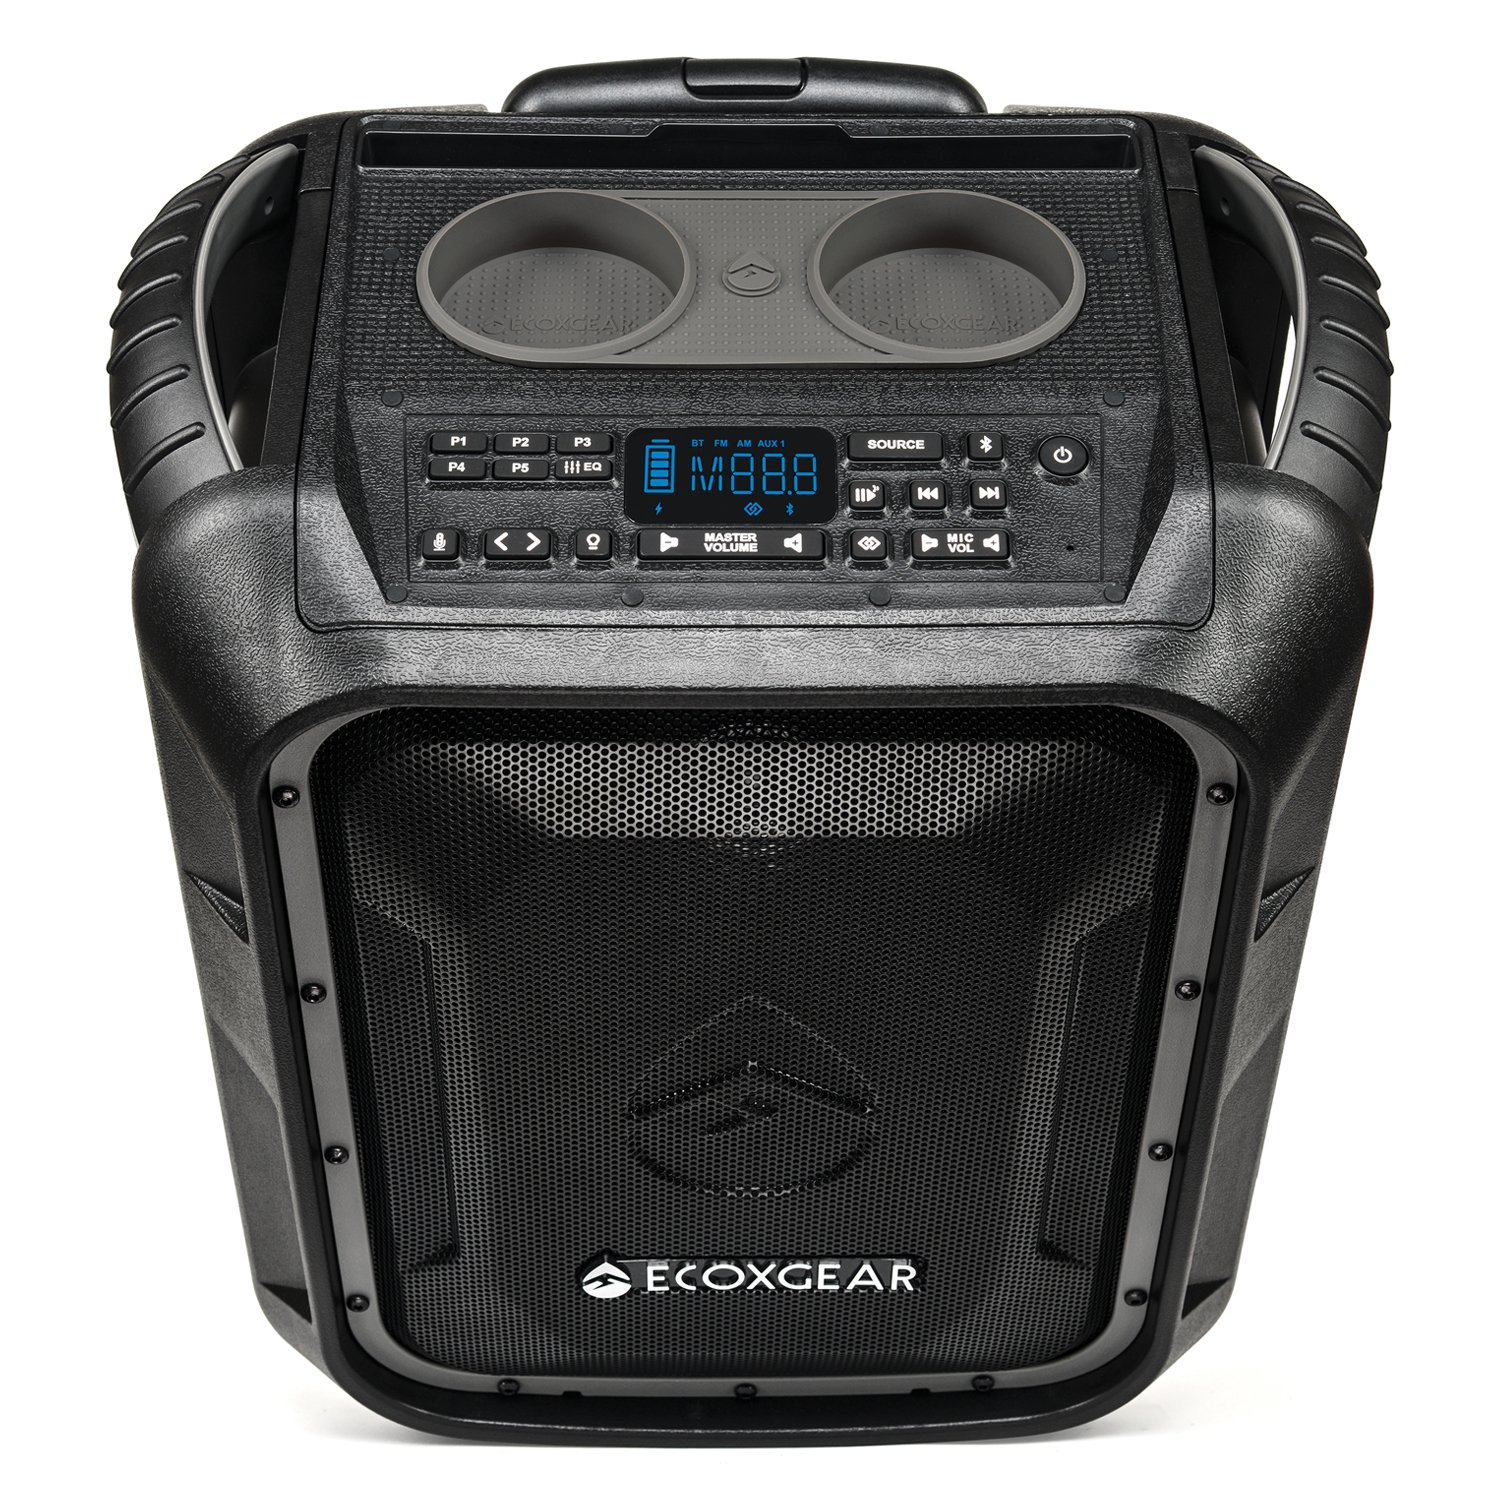 Ecoxgear Gdi-exbld810 Waterproof Portable Bluetooth/am/fm..